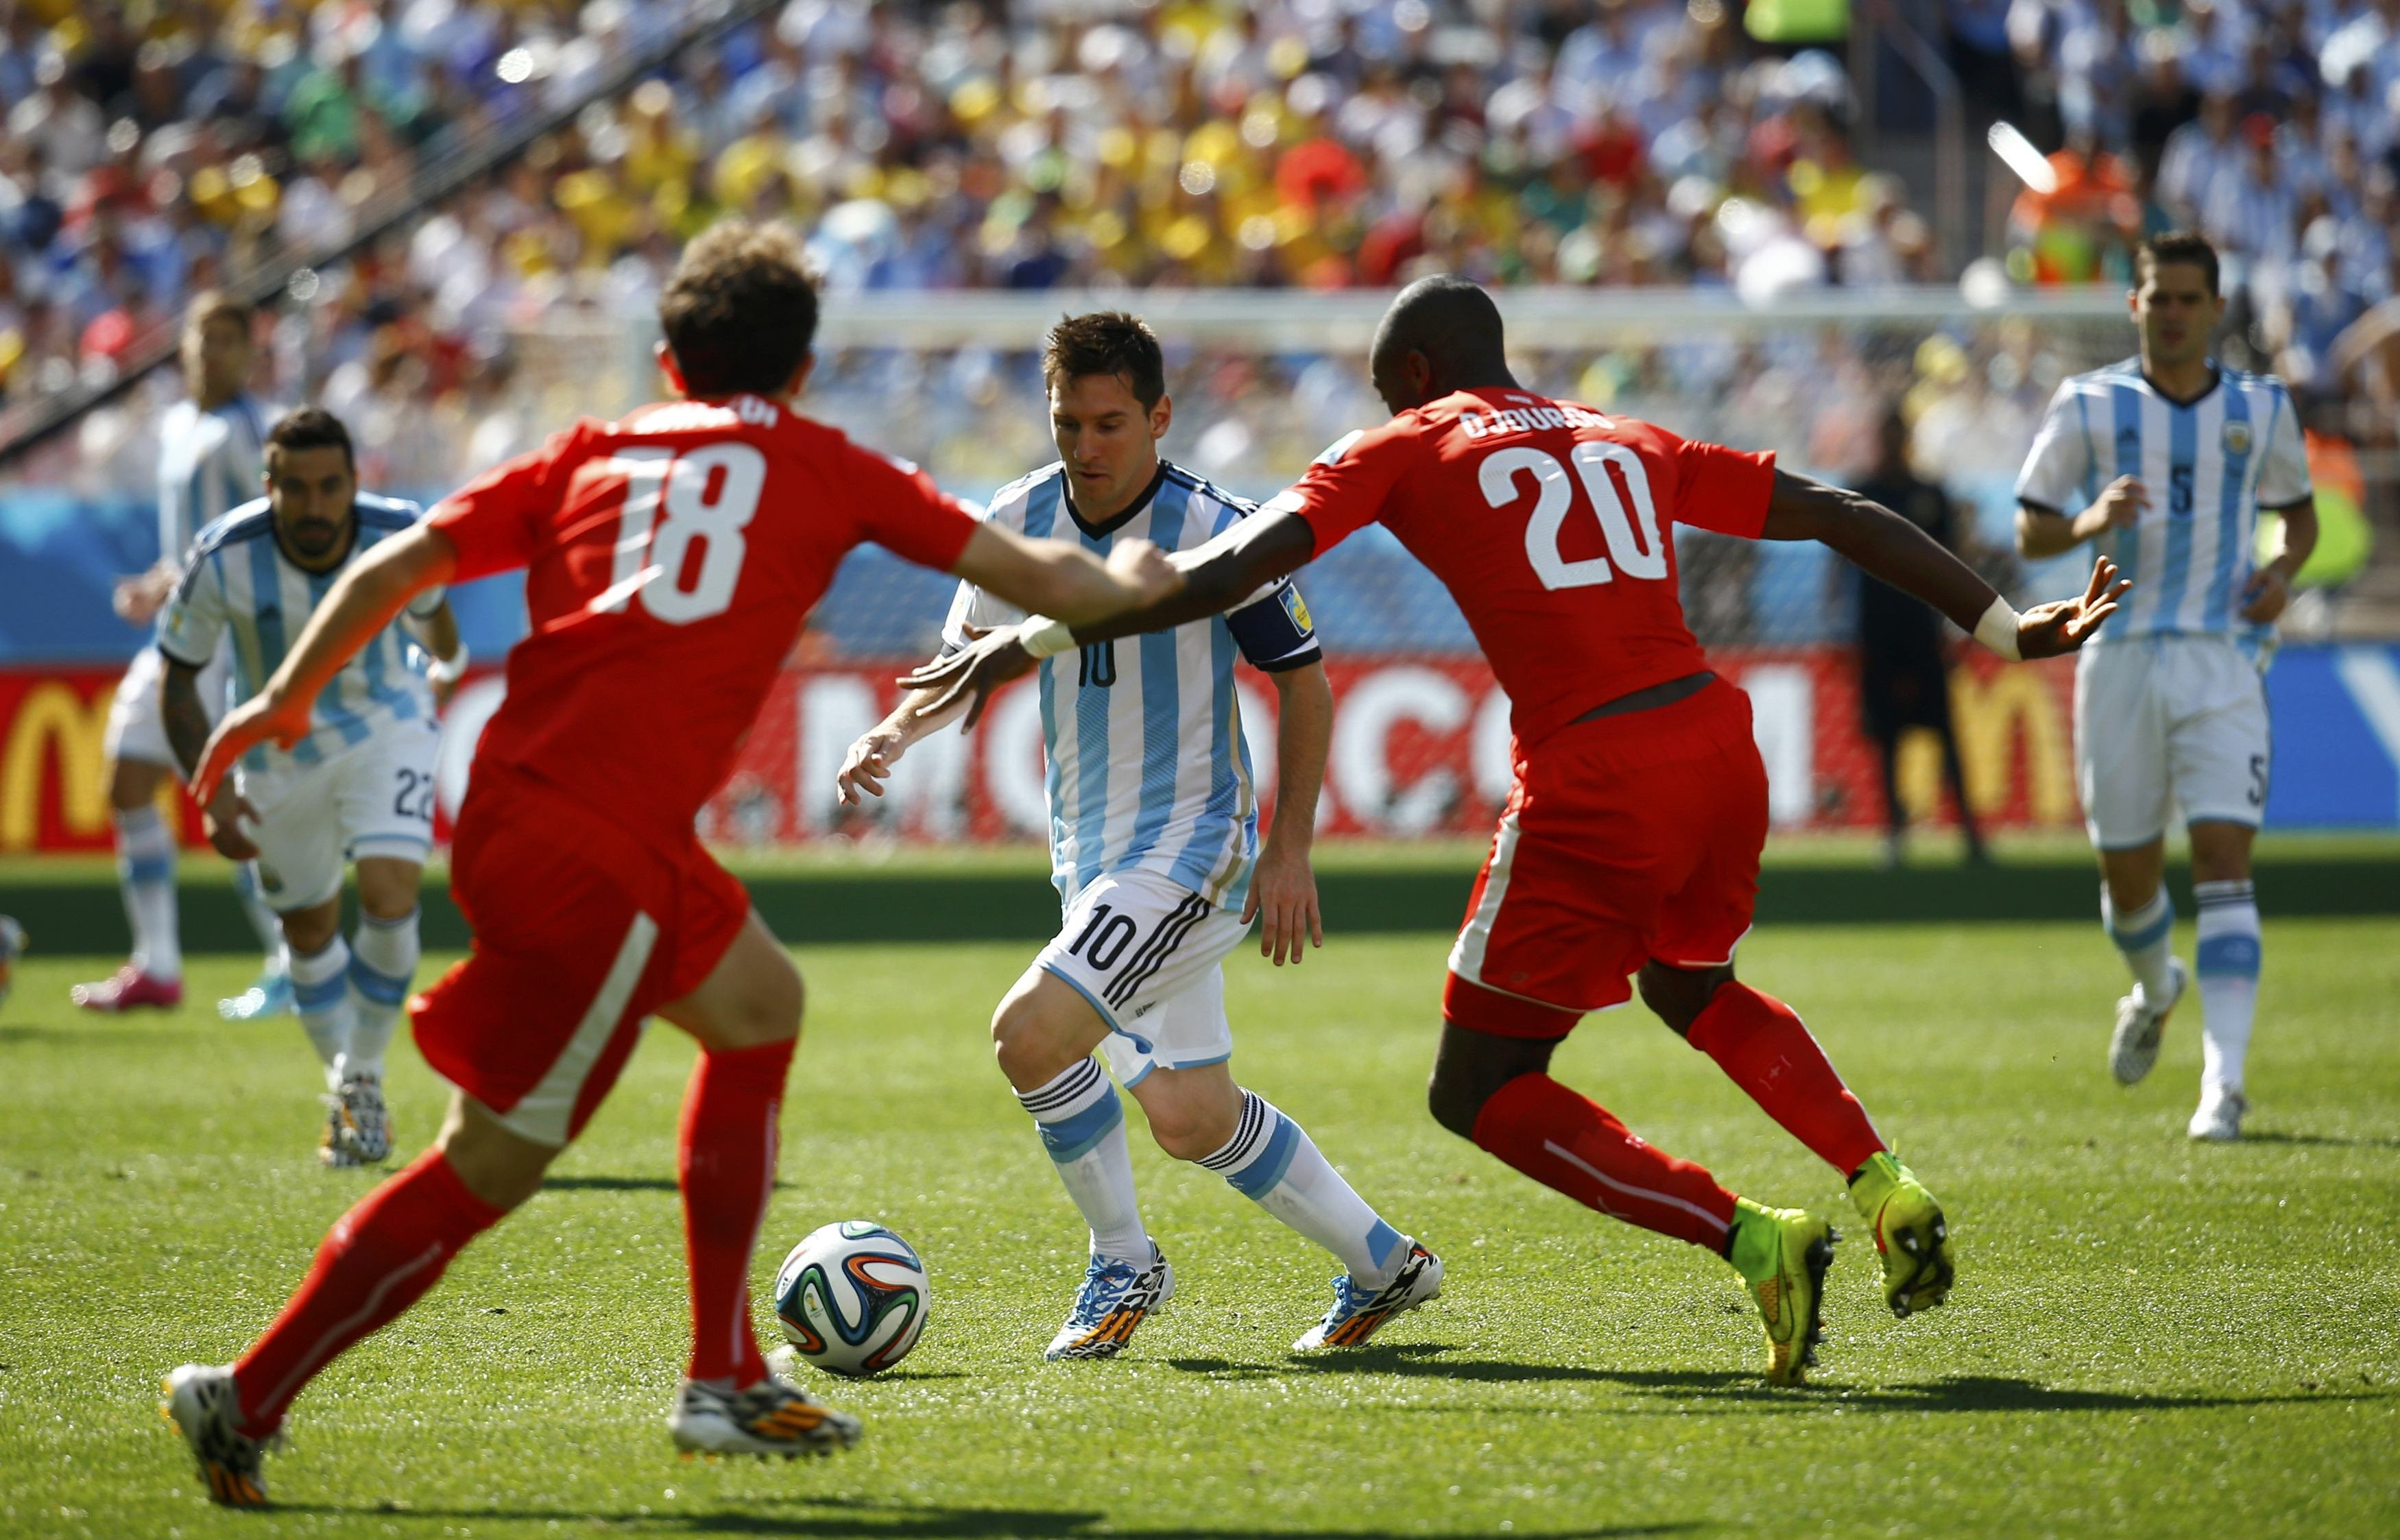 Argentina's Lionel Messi  fights for the ball with Switzerland's Admir Mehmedi and Johan Djourou during their 2014 World Cup round of 16 game at the Corinthians arena in Sao Paulo, Brazil on July 1, 2014.